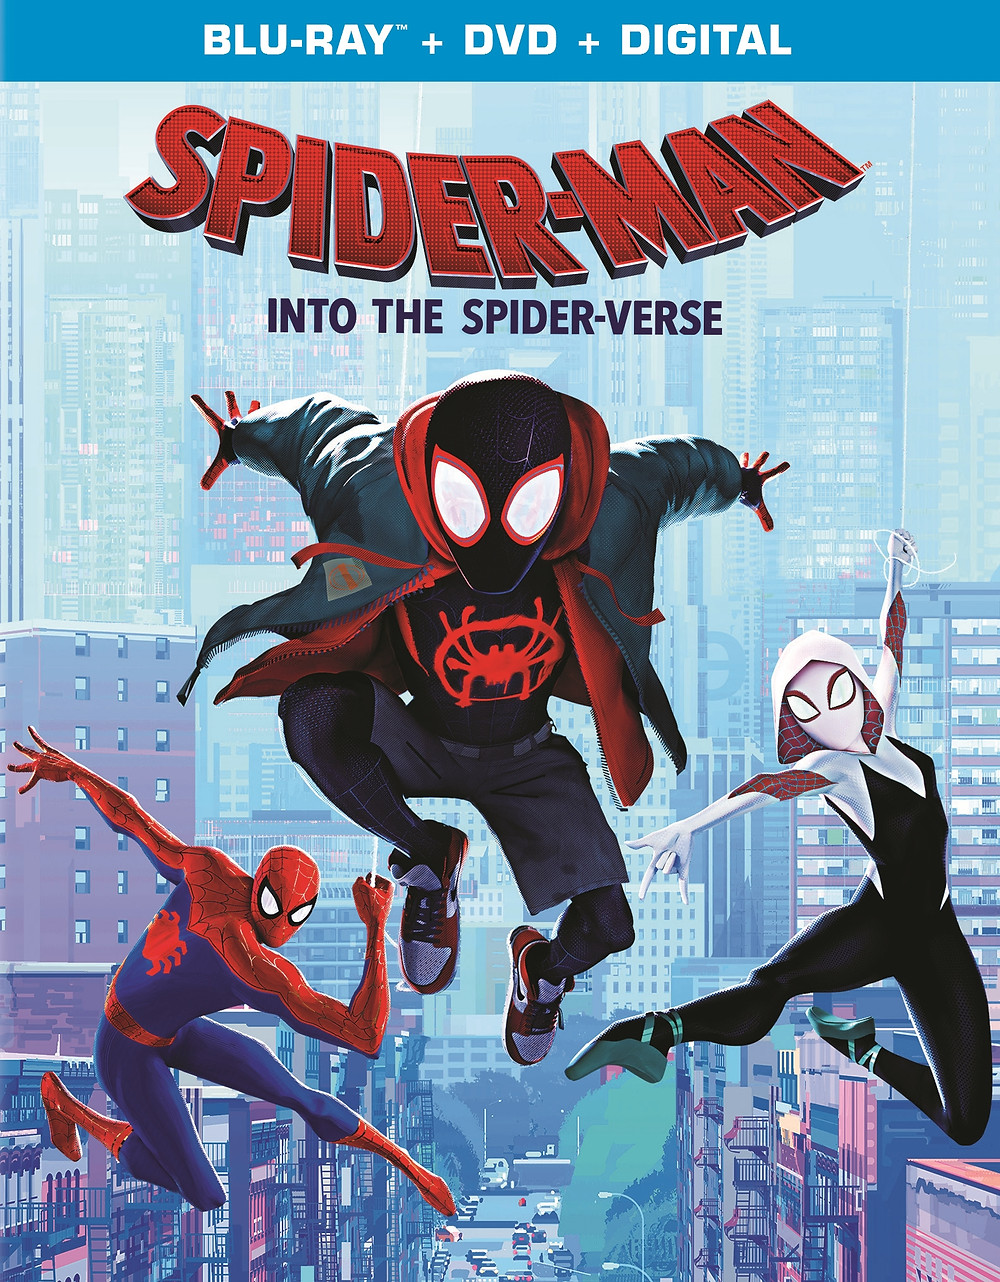 Three superheroes leap through the air against a backdrop of New York City. In the center is Miles Morales's Spider-Man who wears a jean jacket over a red hoodie, a t-shirt with a spray painted spider symbol on it, shorts and sneakers. A black and red mask covers his face. On the left is Peter Parker's Spider-Man in the traditional blue and red costume. On the right is Spider-Gwen. She wears a black, white, and pink uniform that resembles a dancer's outfit with an added hood. Her mask is white and black. She also wears ballet shoes.